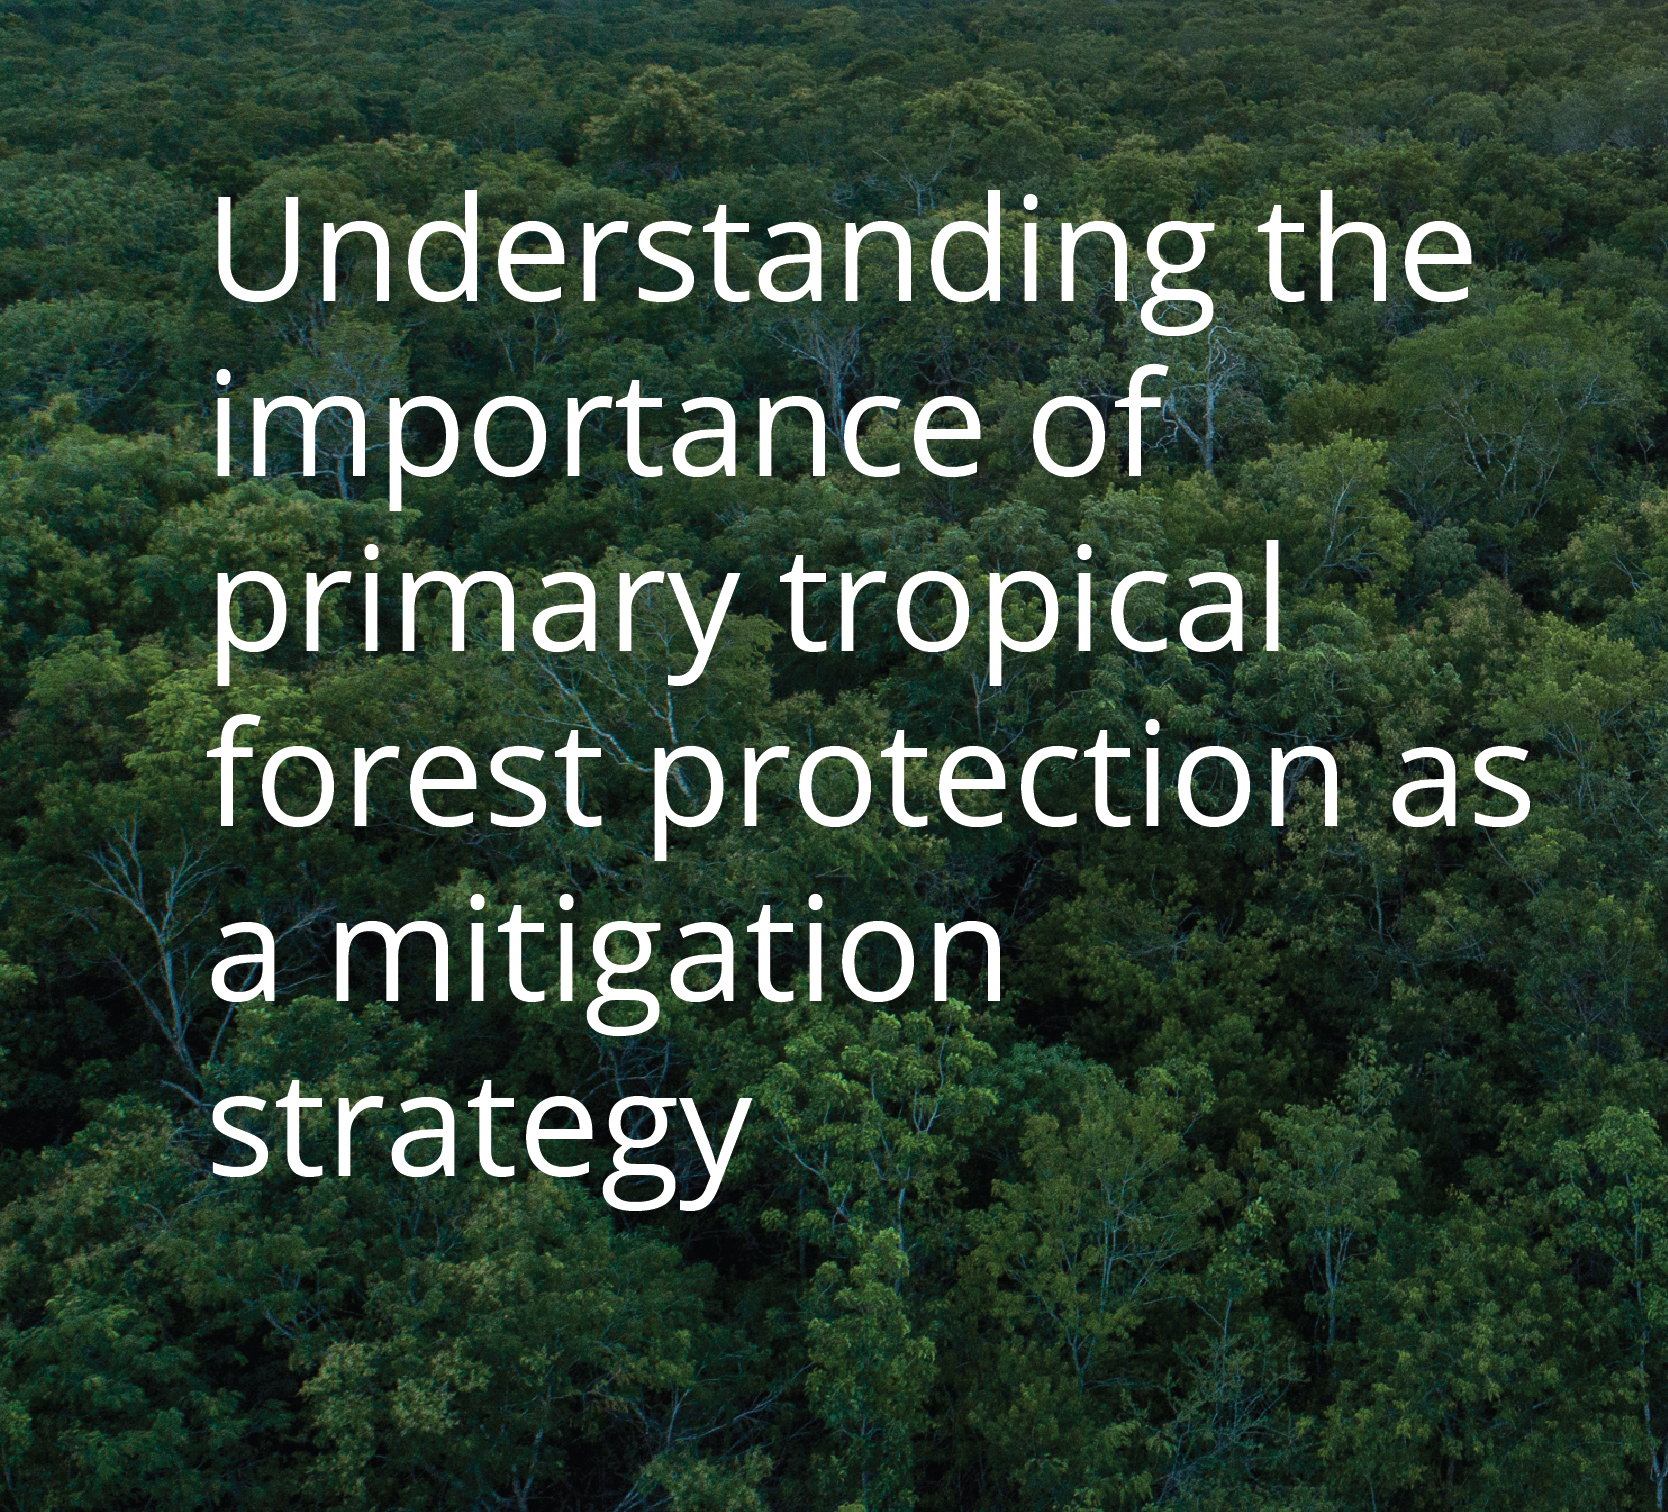 Understanding the importance of primary tropical forest protection as a mitigation strategy